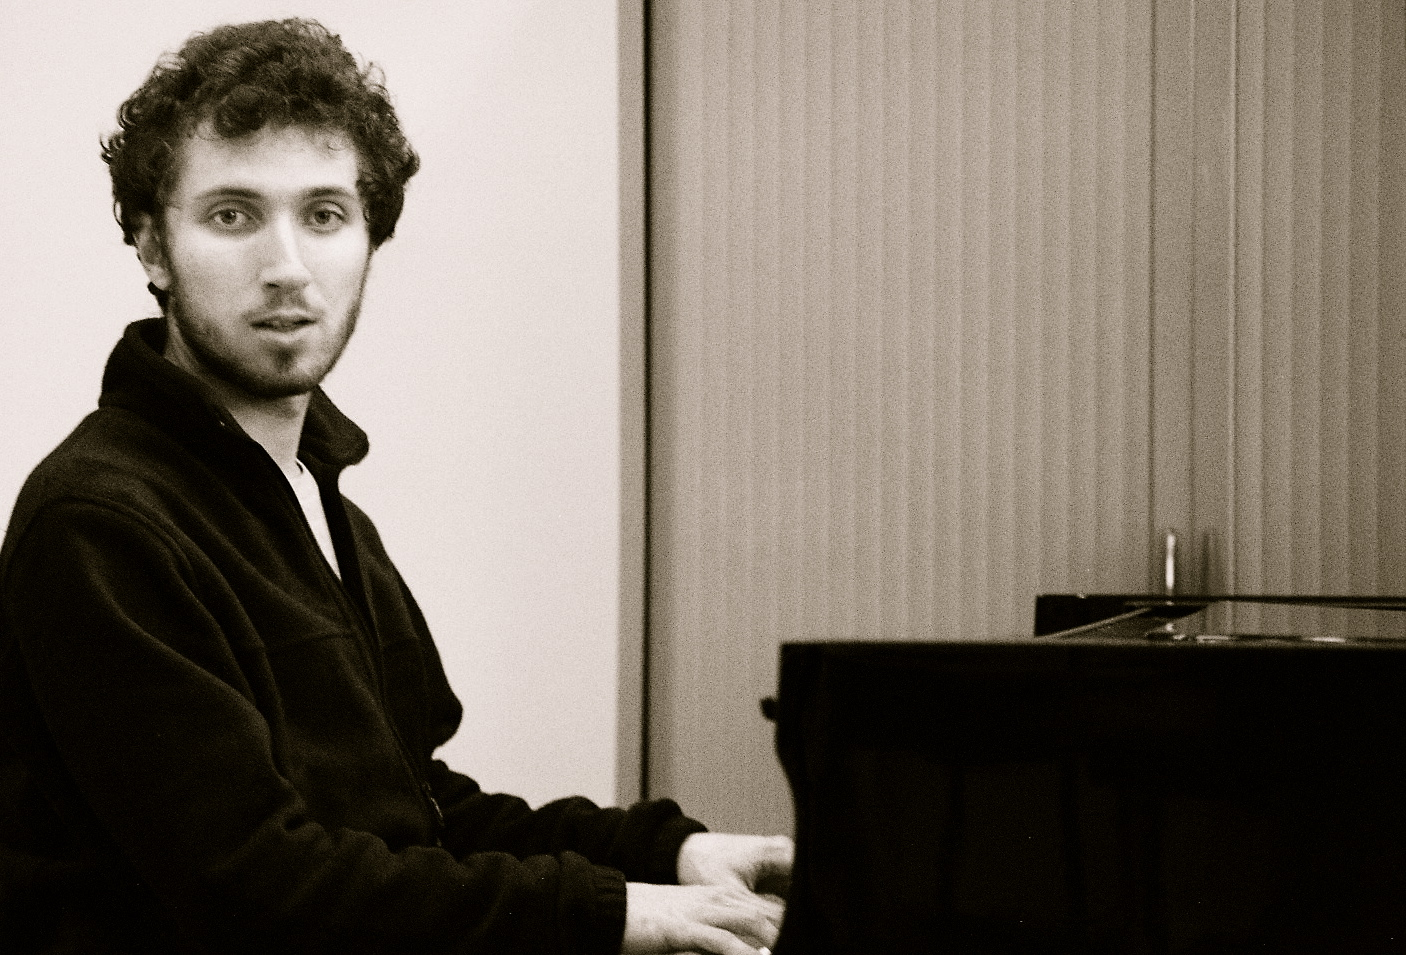 Corentin Boissier at the piano, 2015